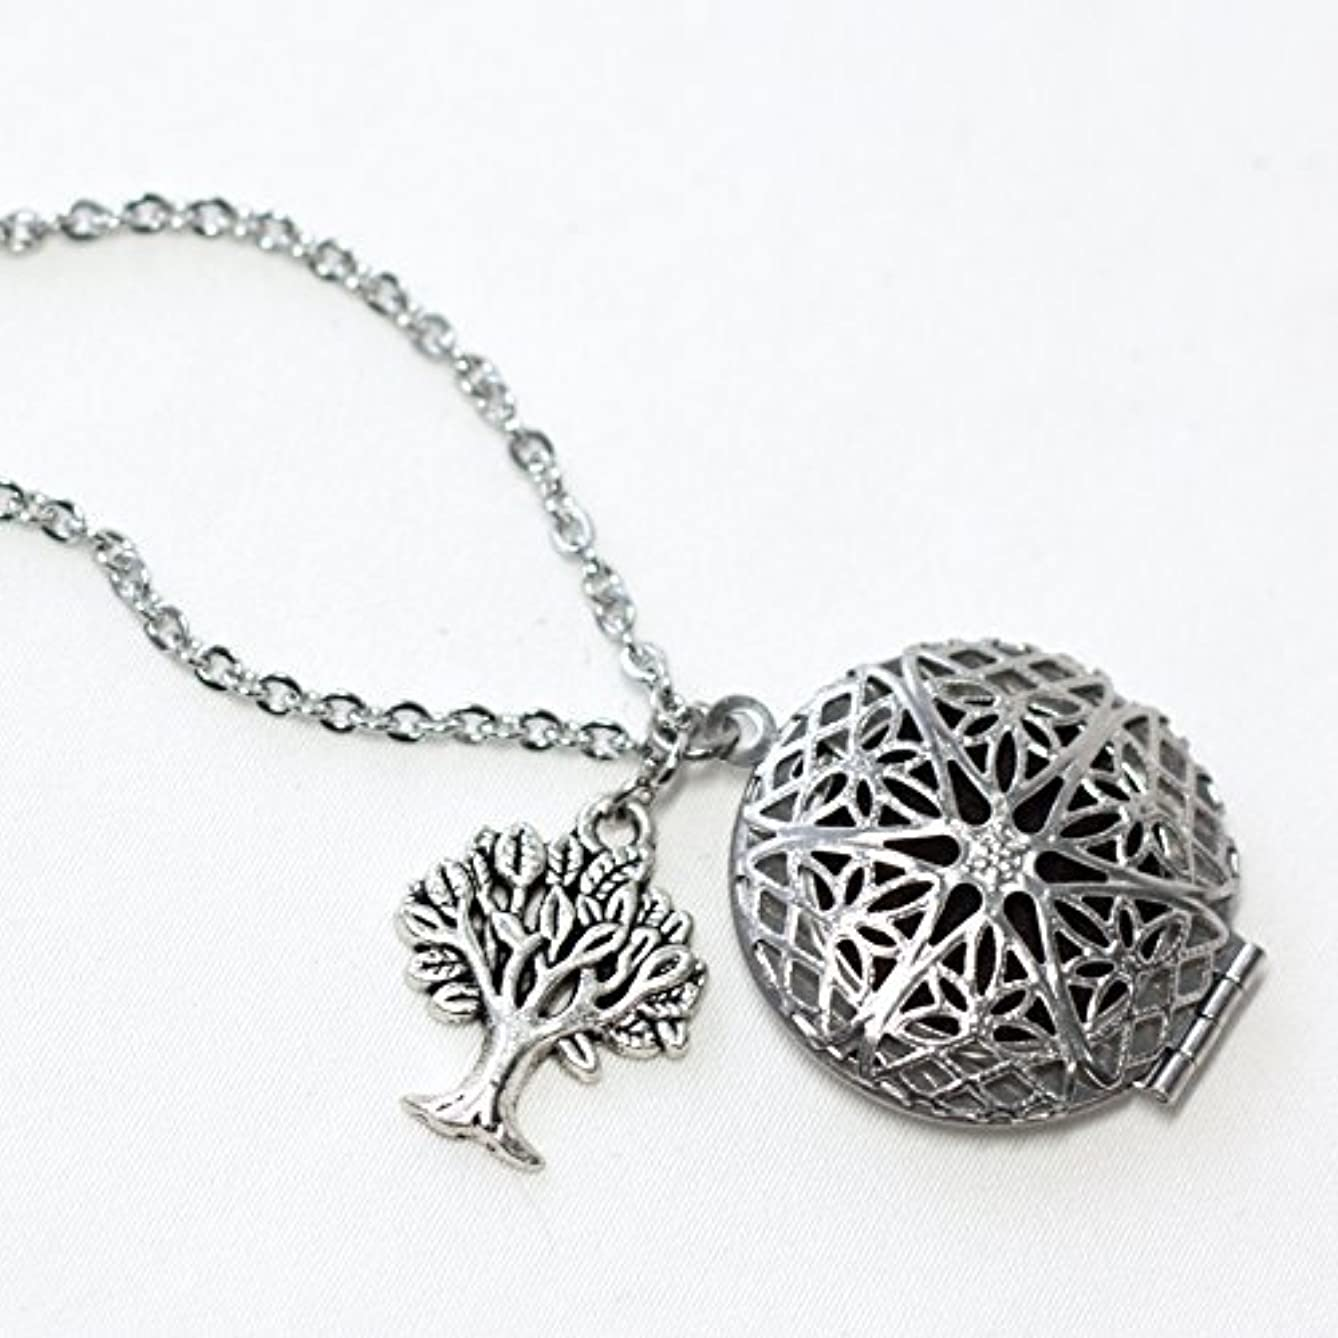 伝統的壮大な鷲Tree Diffuser Necklace for Essential Oils 18 inches with felt pads [並行輸入品]